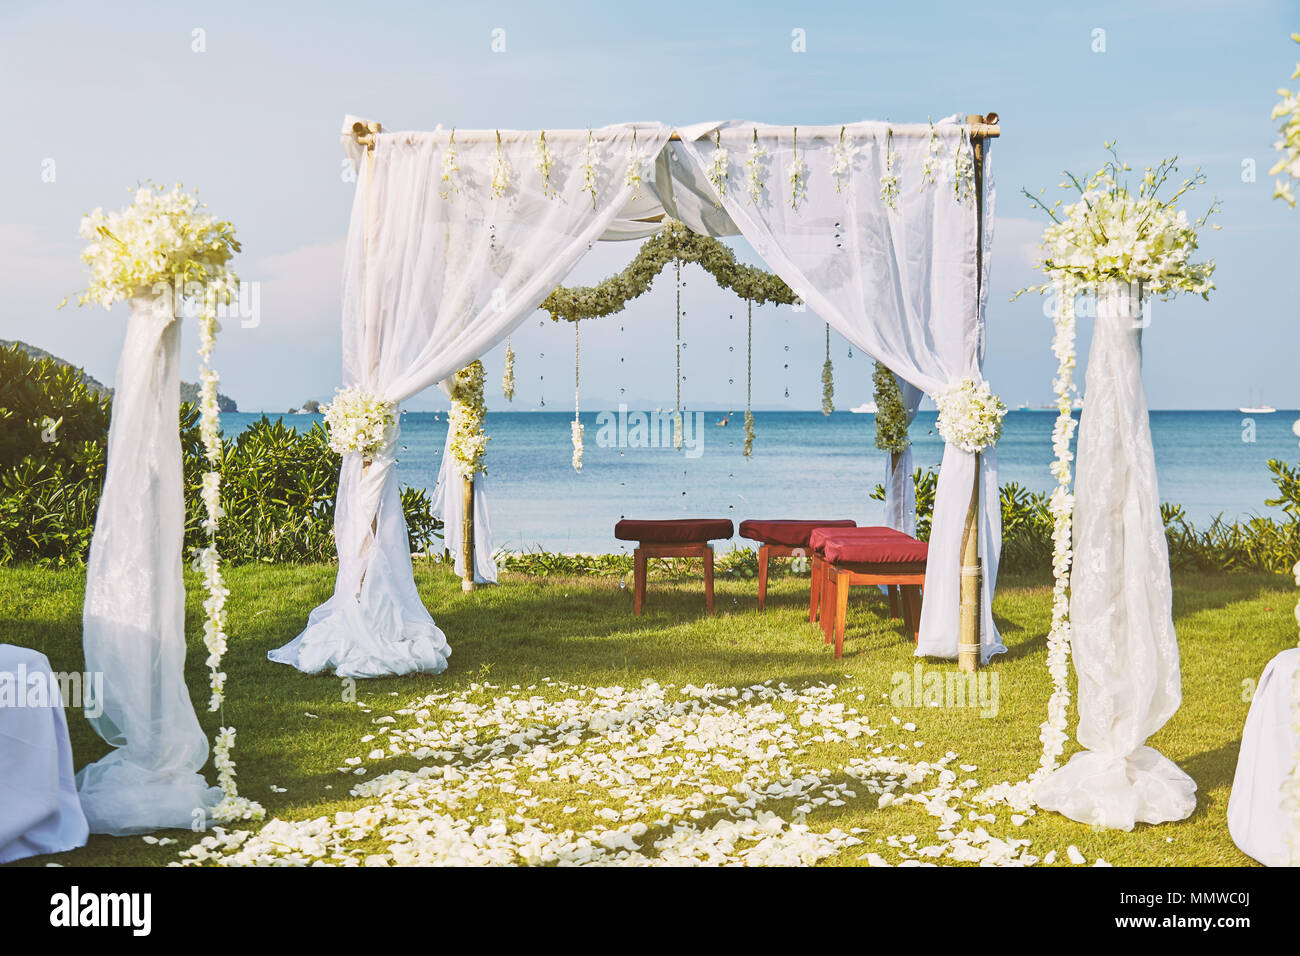 The Beautiful Wedding Venue Setting With Flowers Floral